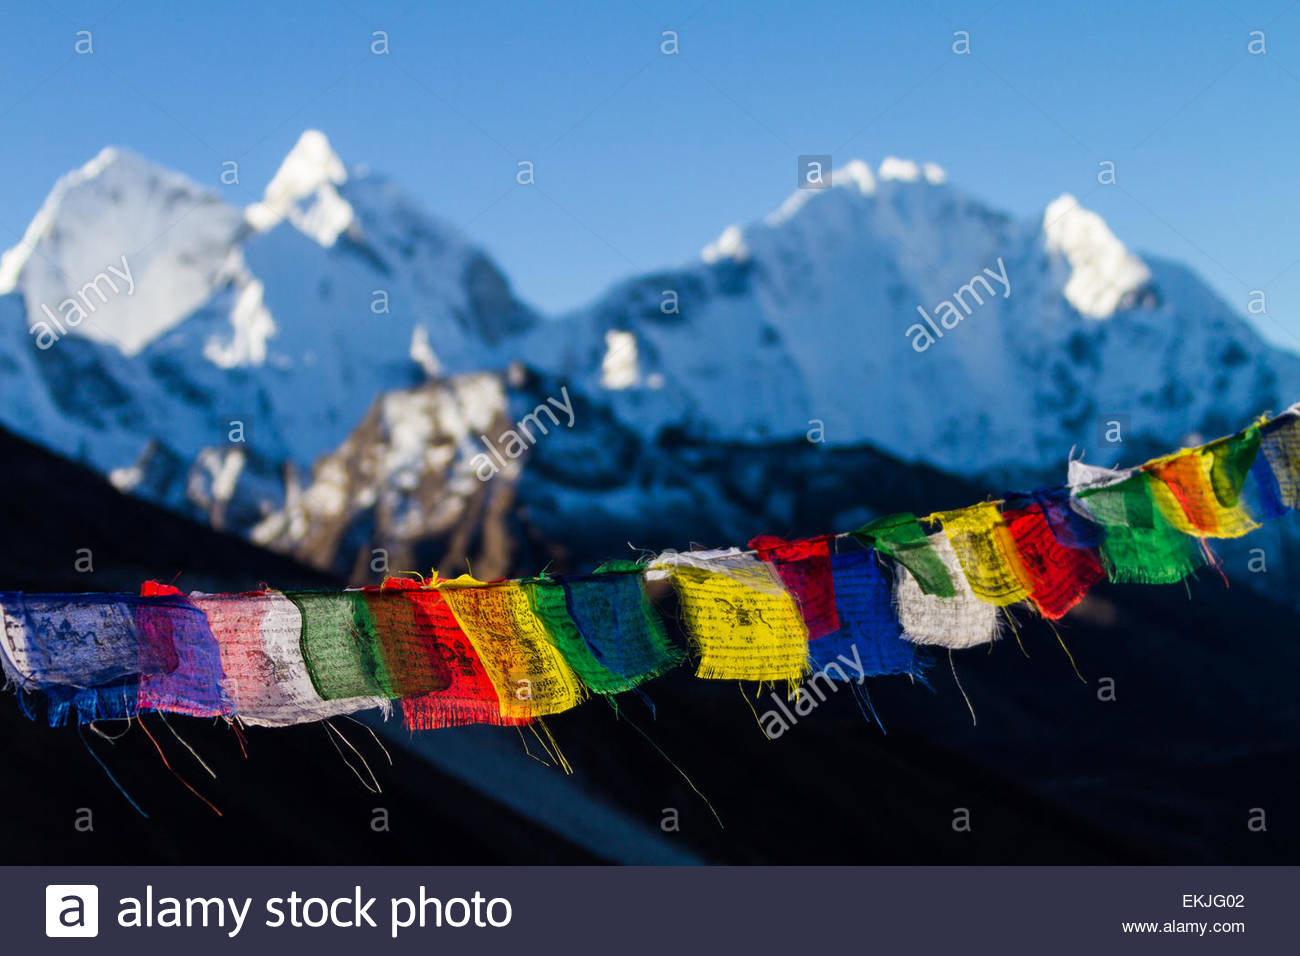 Buddhist prayer flags fly in front of distant snowcapped mountains in the Solukhumbu Region of the Nepali Himalayas - Stock Image